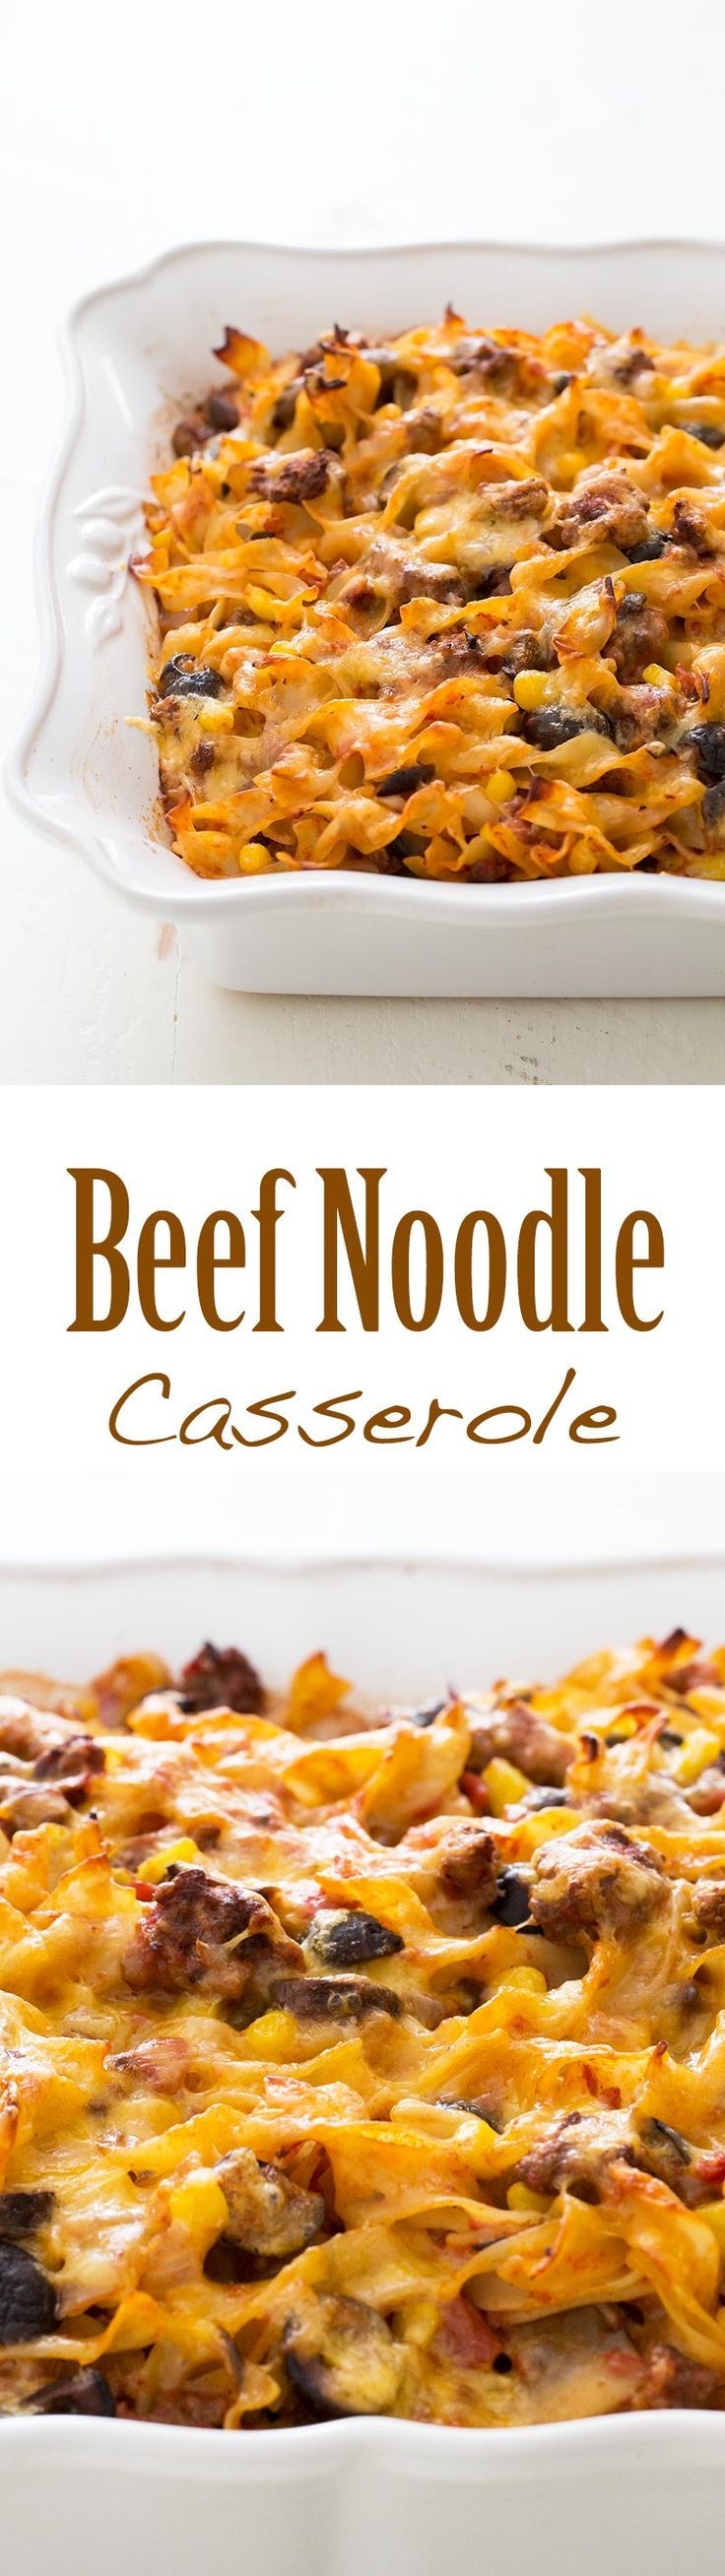 BEST Beef Noodle Casserole EVER! Our favorite recipe from my grandmother is this ground beef and egg noodle casserole with you won't believe all the other wonderful ingredients. Serves a crowd!